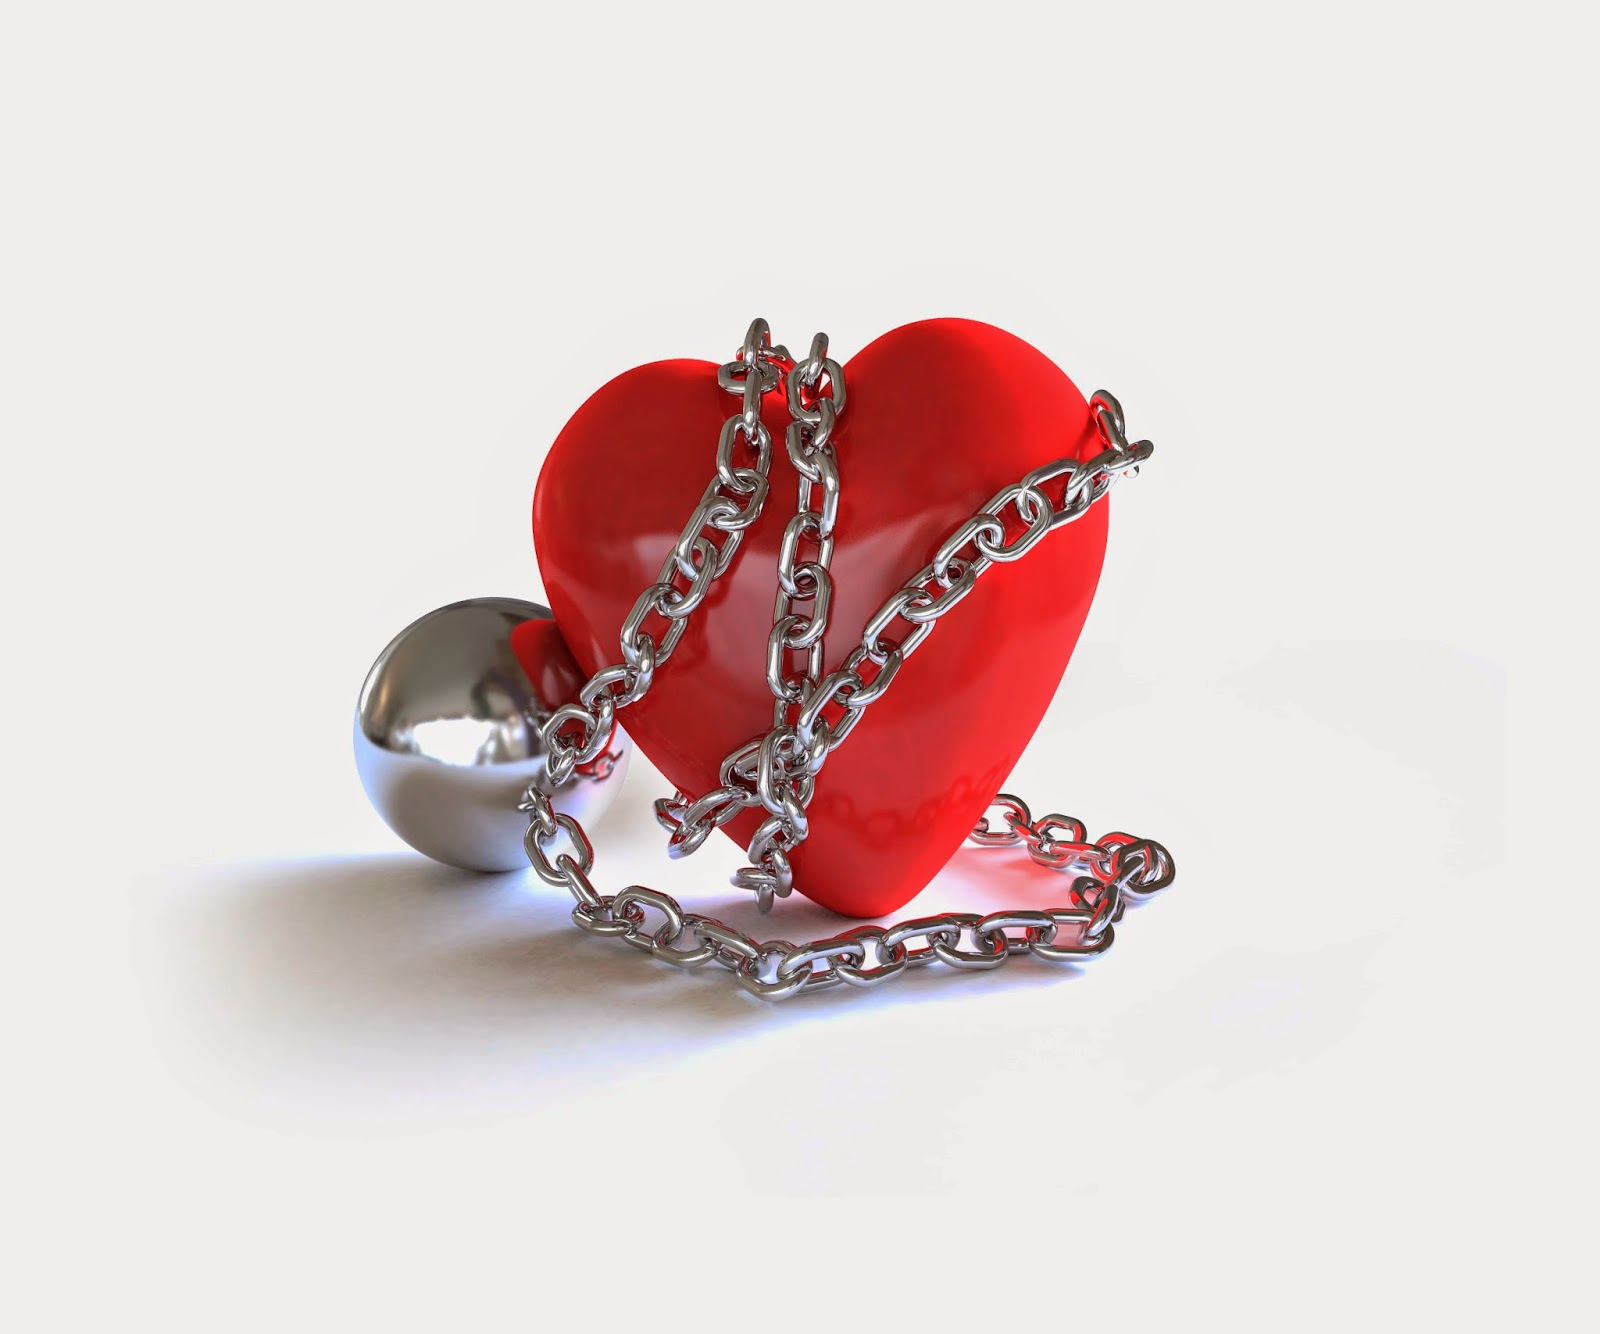 Heart wrapped in chains